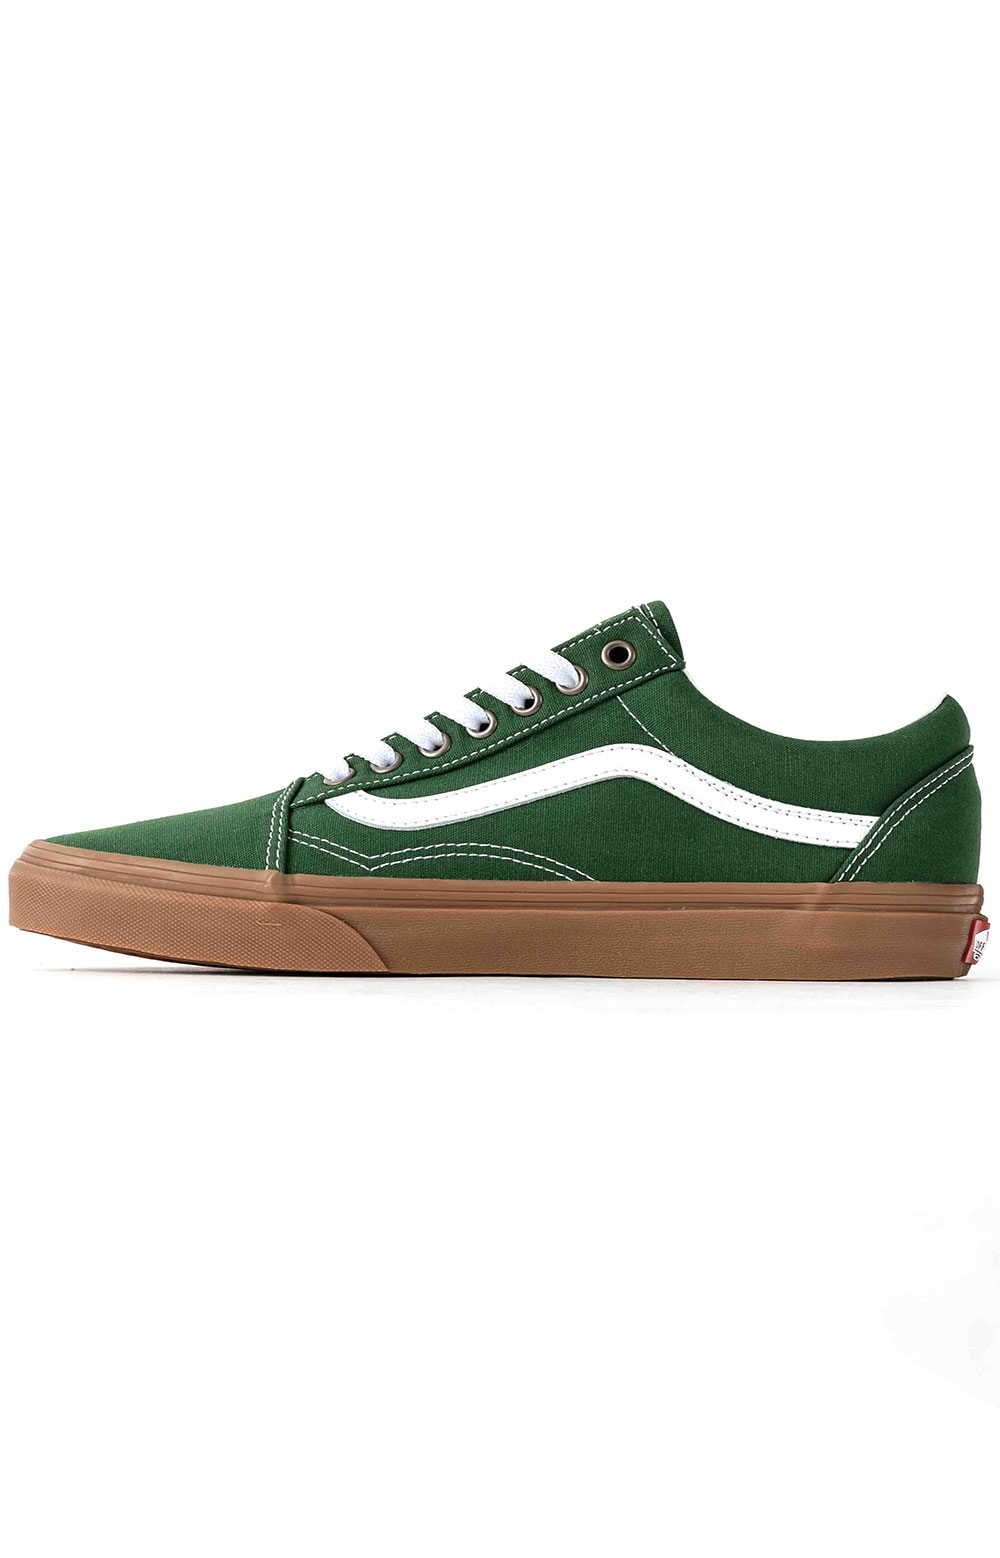 (U3BWYY) Gum Old Skool Shoe - Green Pastures  4